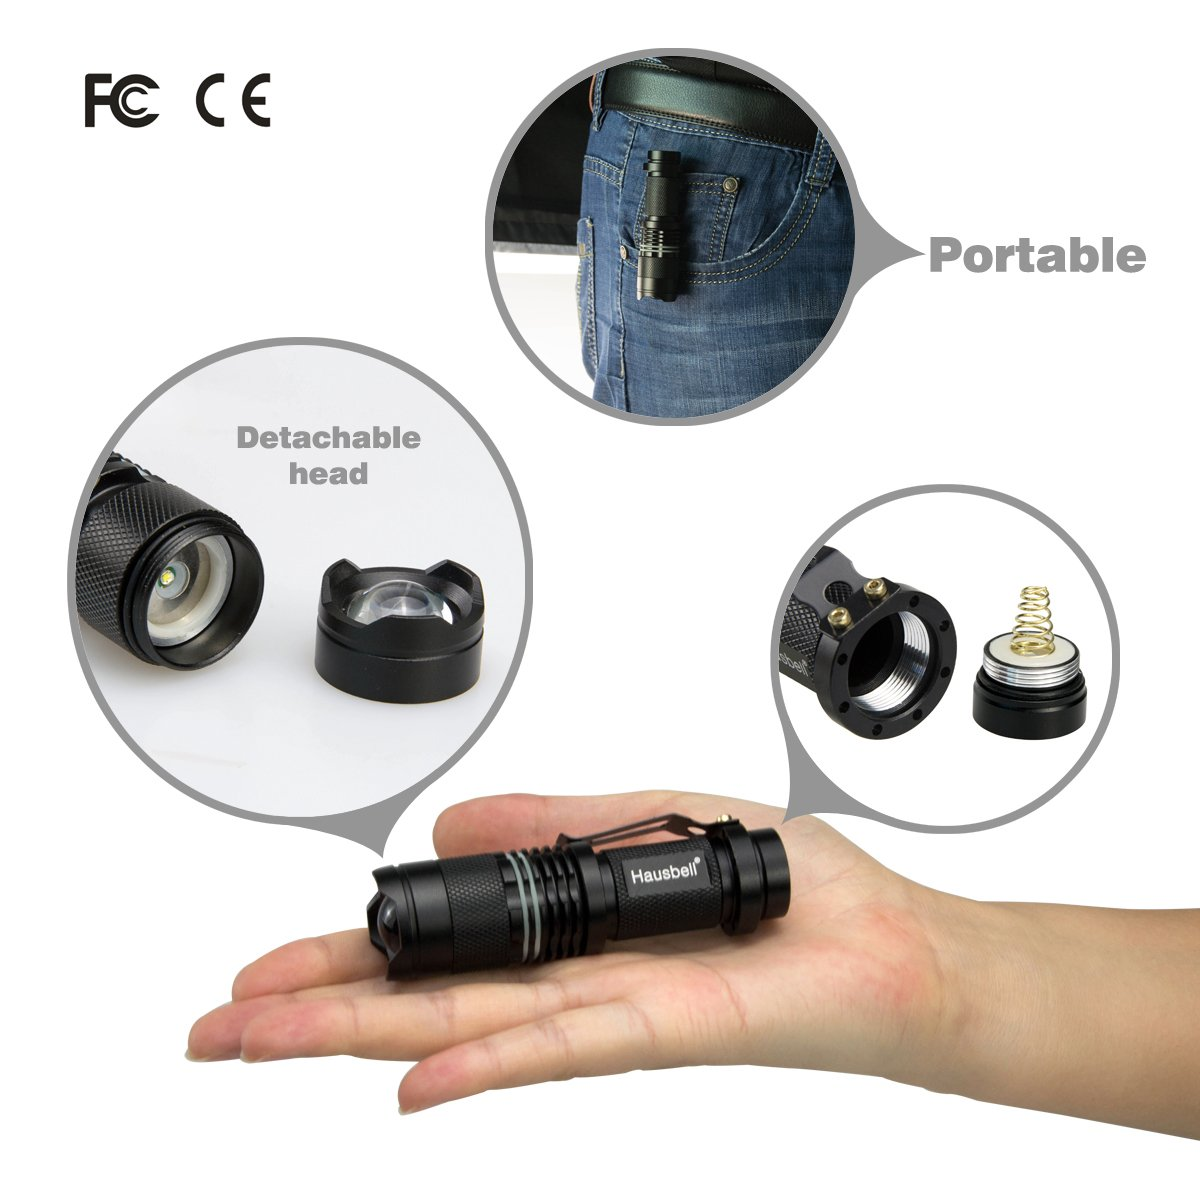 Hausbell 7W Mini LED Flashlight (6 Pack) by Hausbell (Image #4)